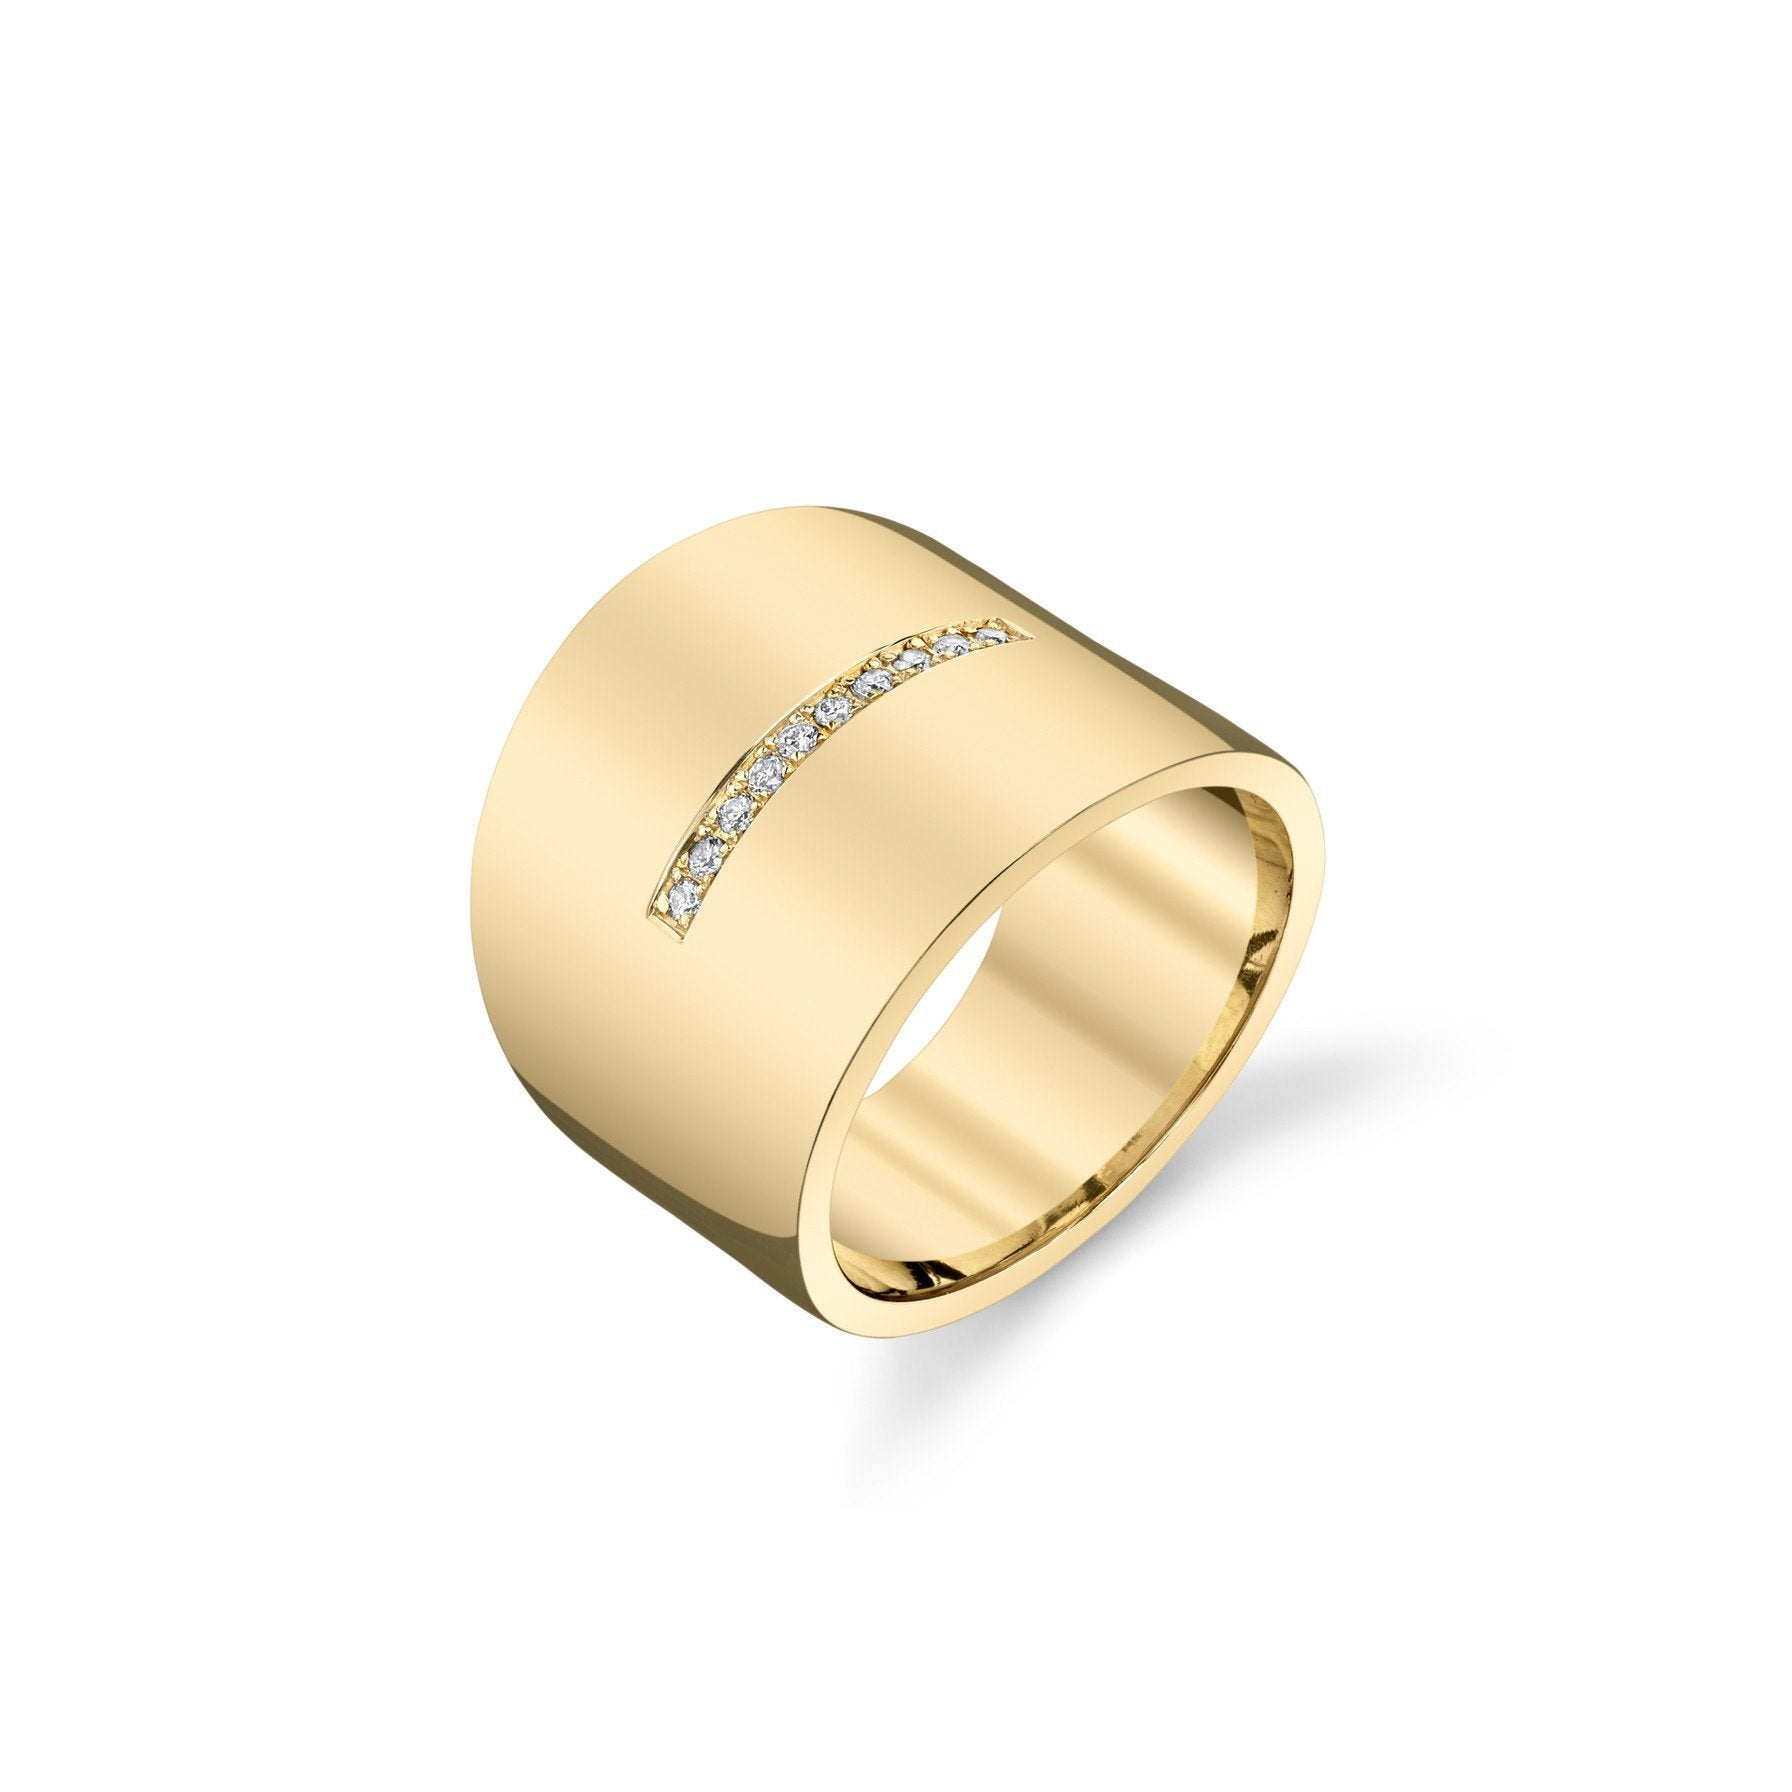 Gabriela Artigas Cigar Band Ring with Pave Diamonds